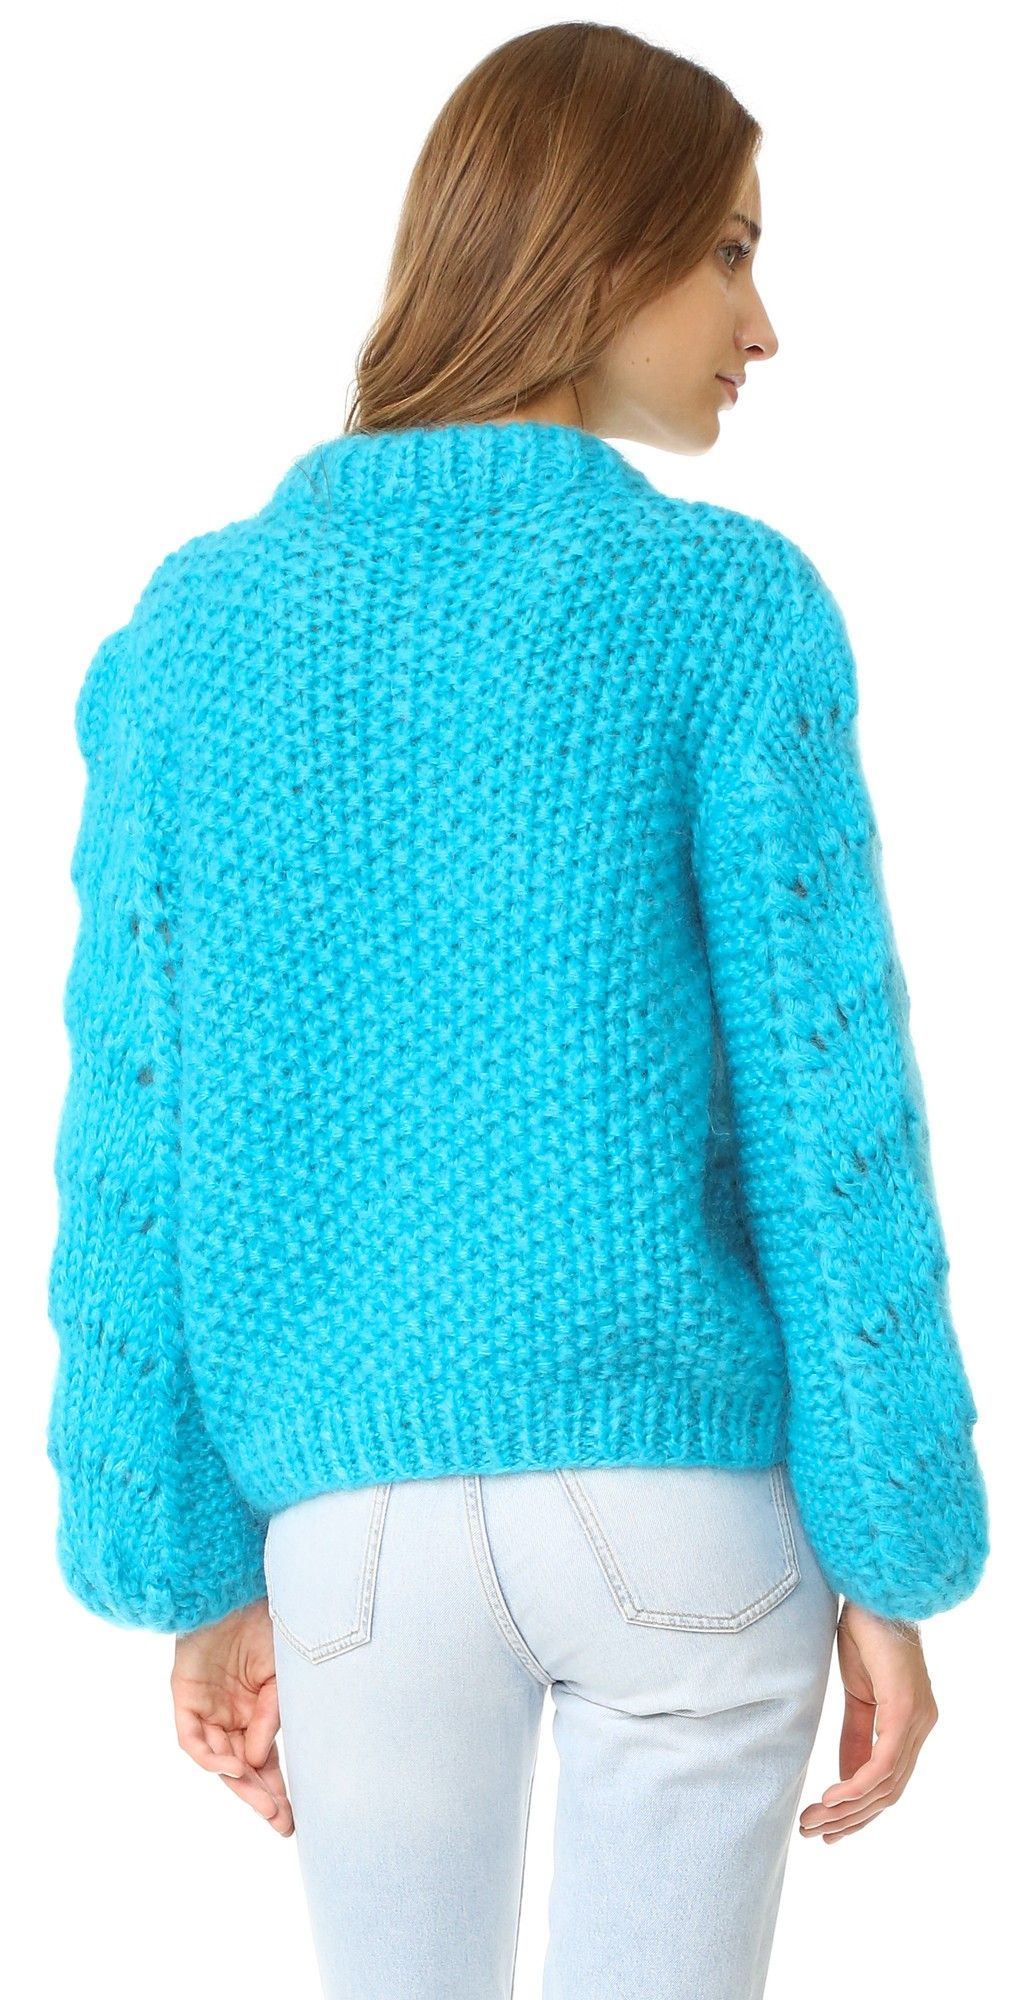 The Julliard Mohair Sweater